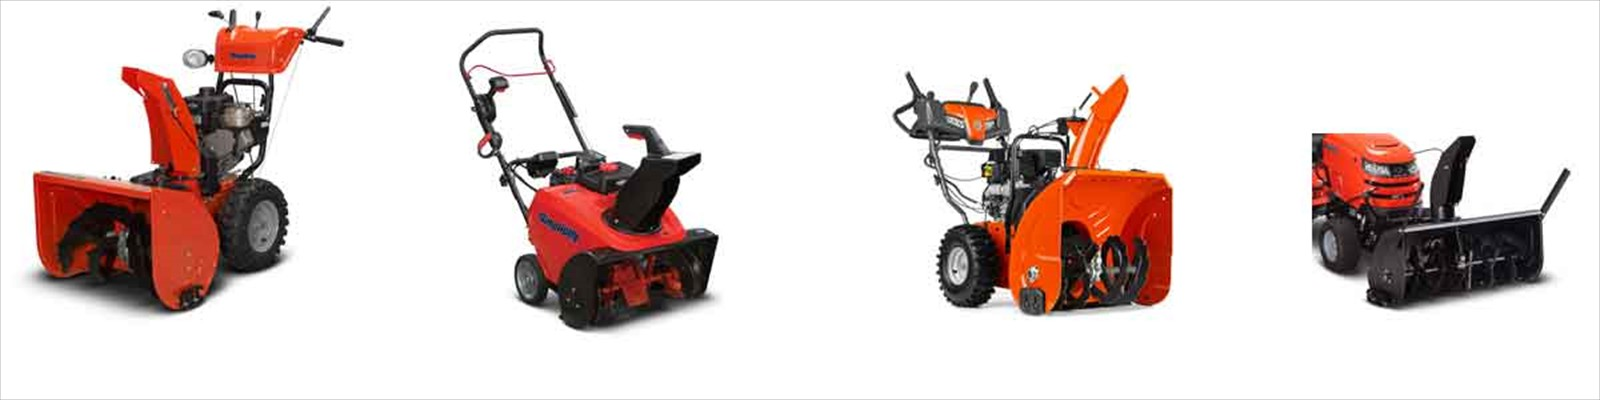 Snow Blowers by Simplicity and Snapper